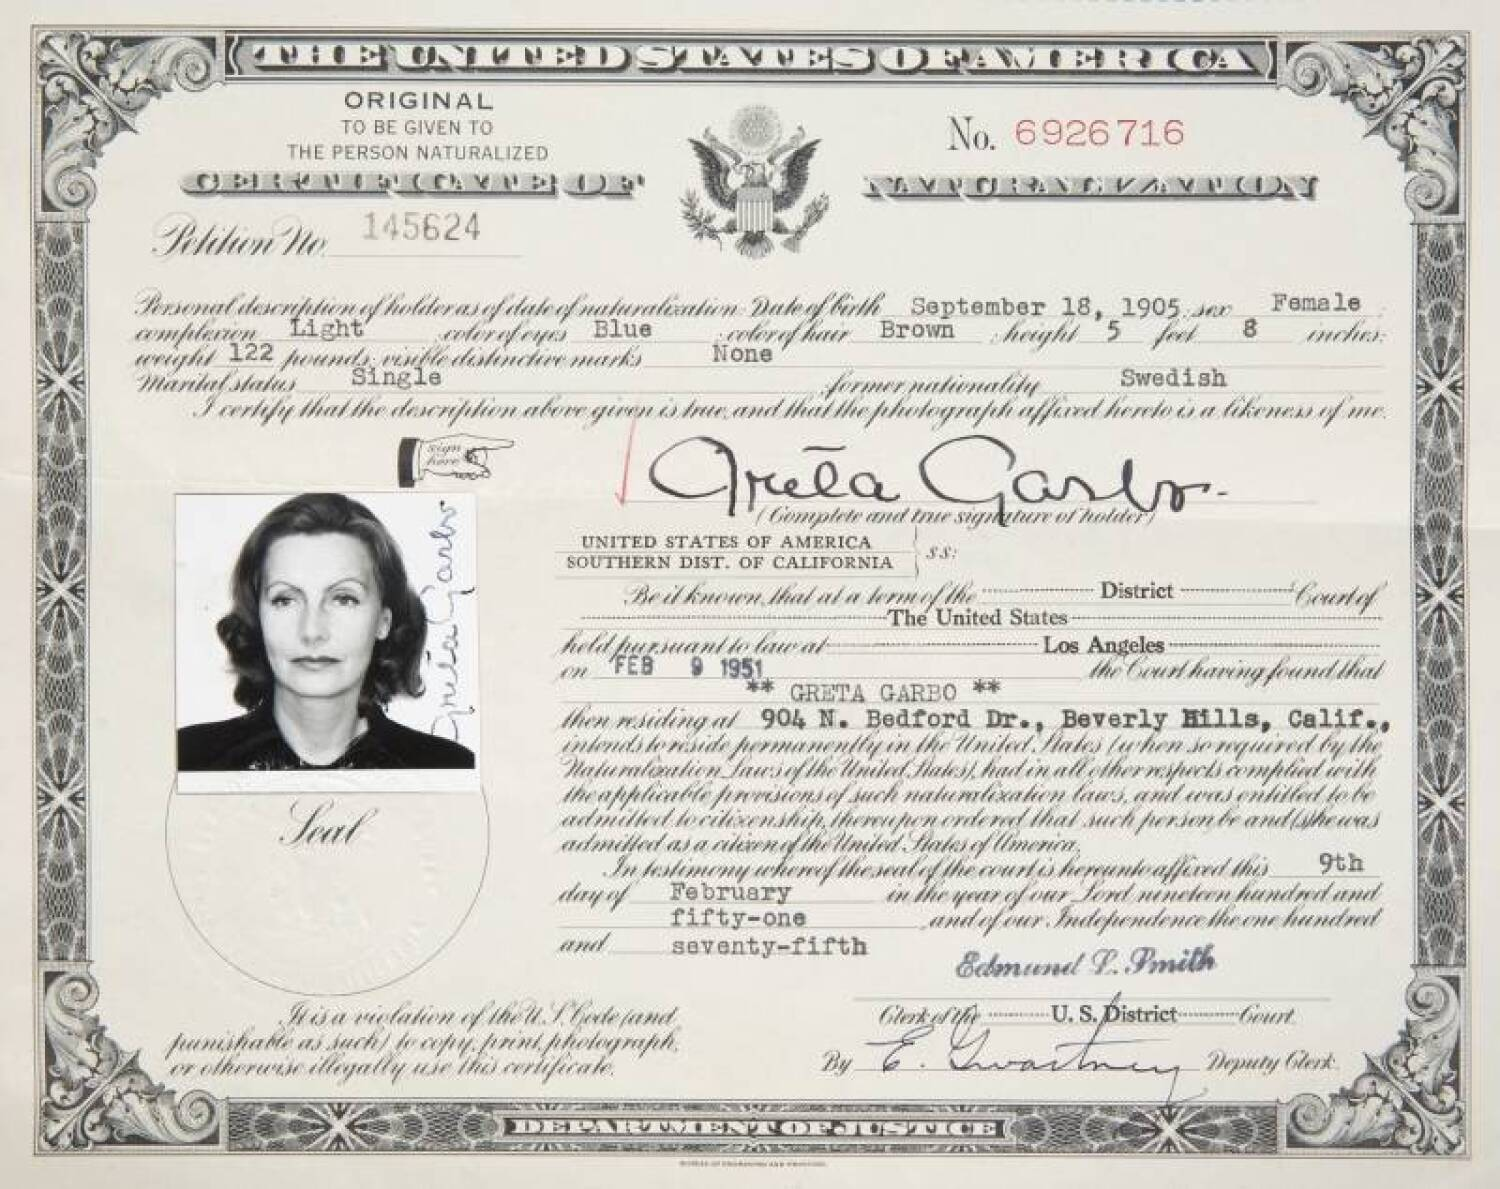 Home Office Naturalization